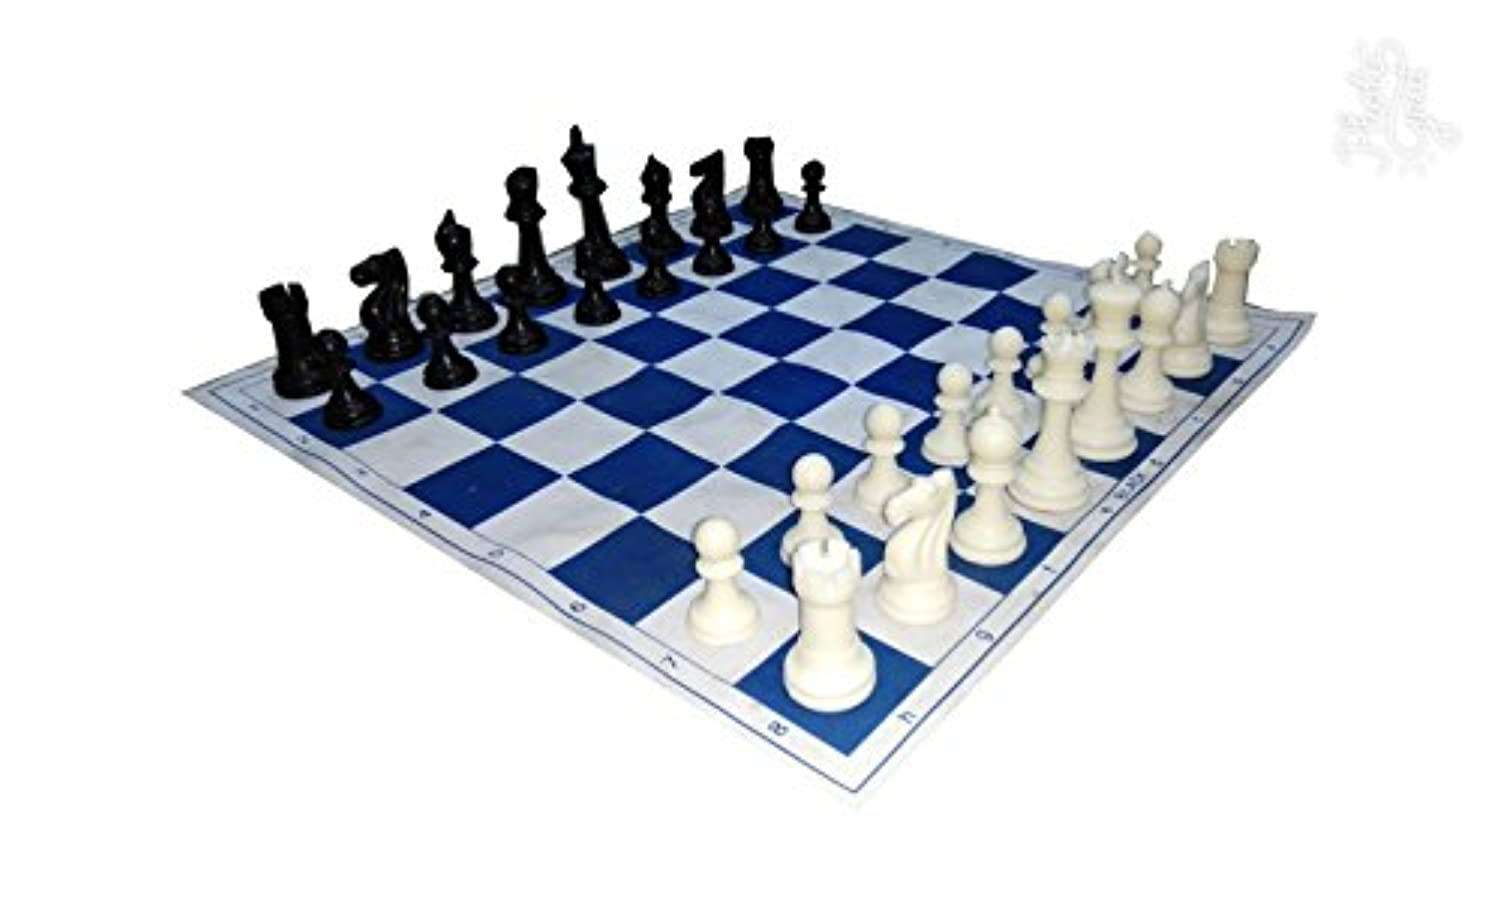 King Wholesale Chess Archer Chess Set Combo - Navy Blue with Black Canvas Bag